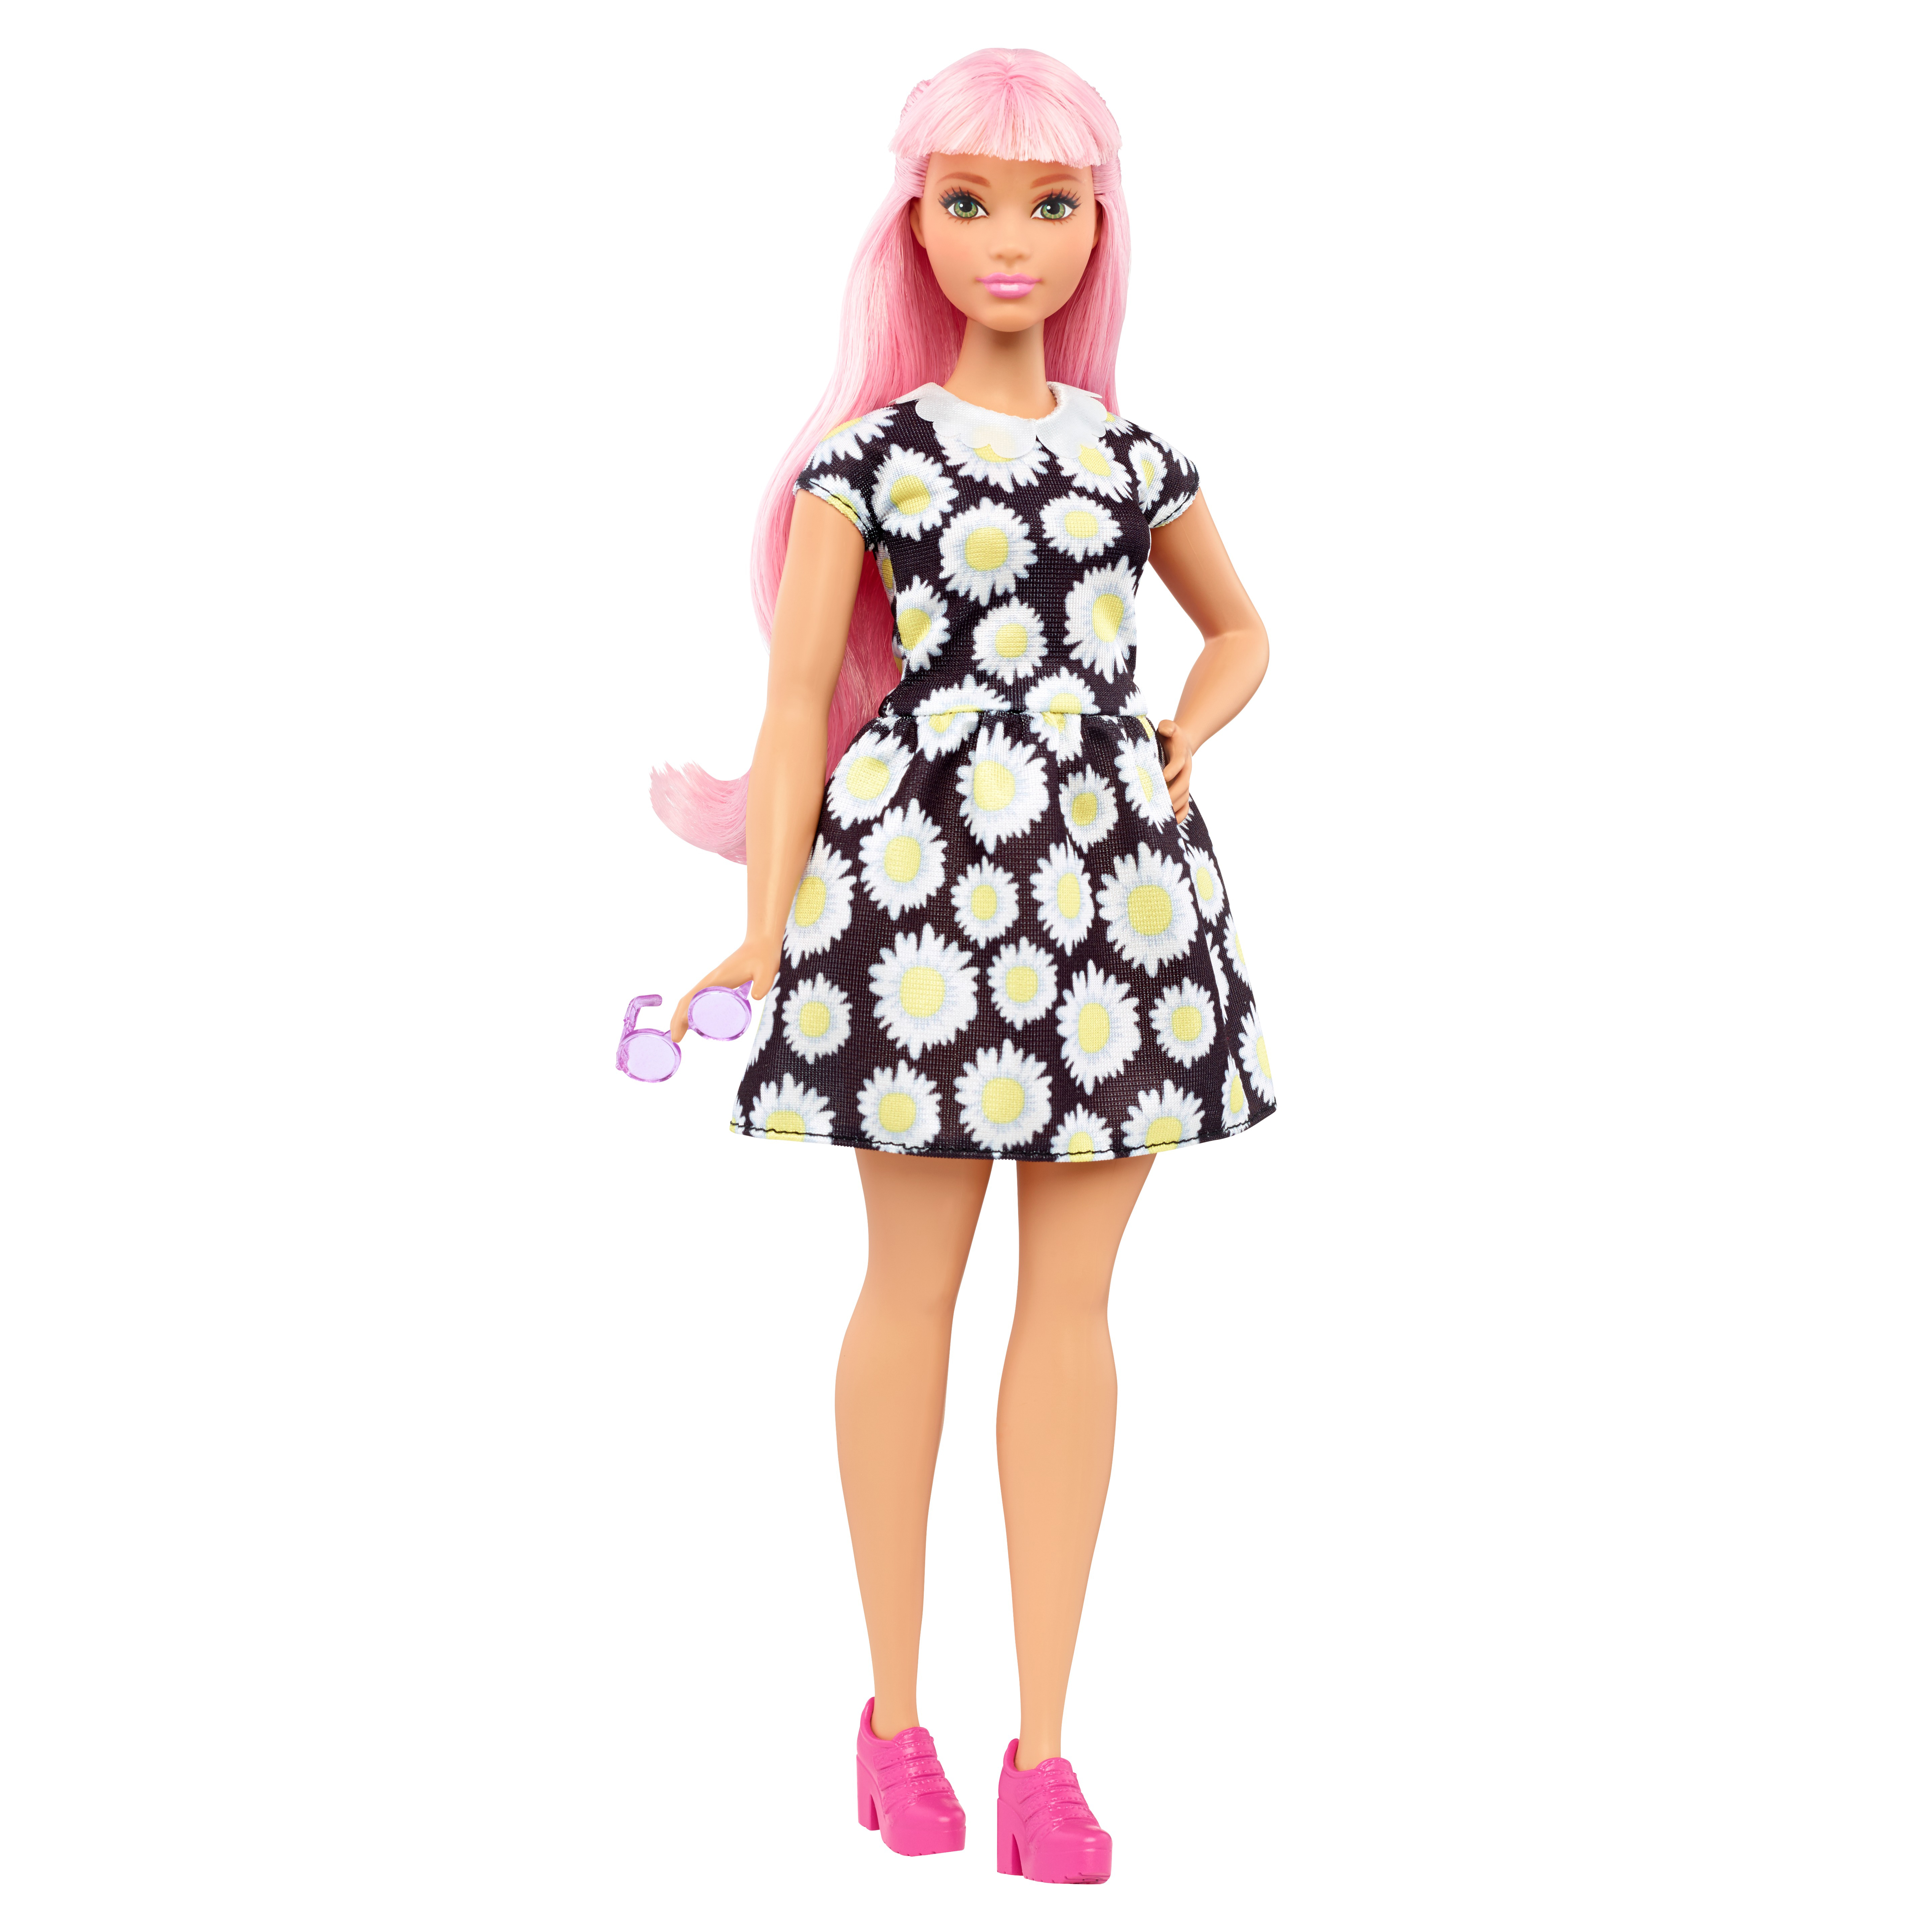 Picture of Barbie Fashionistas Doll Assortment